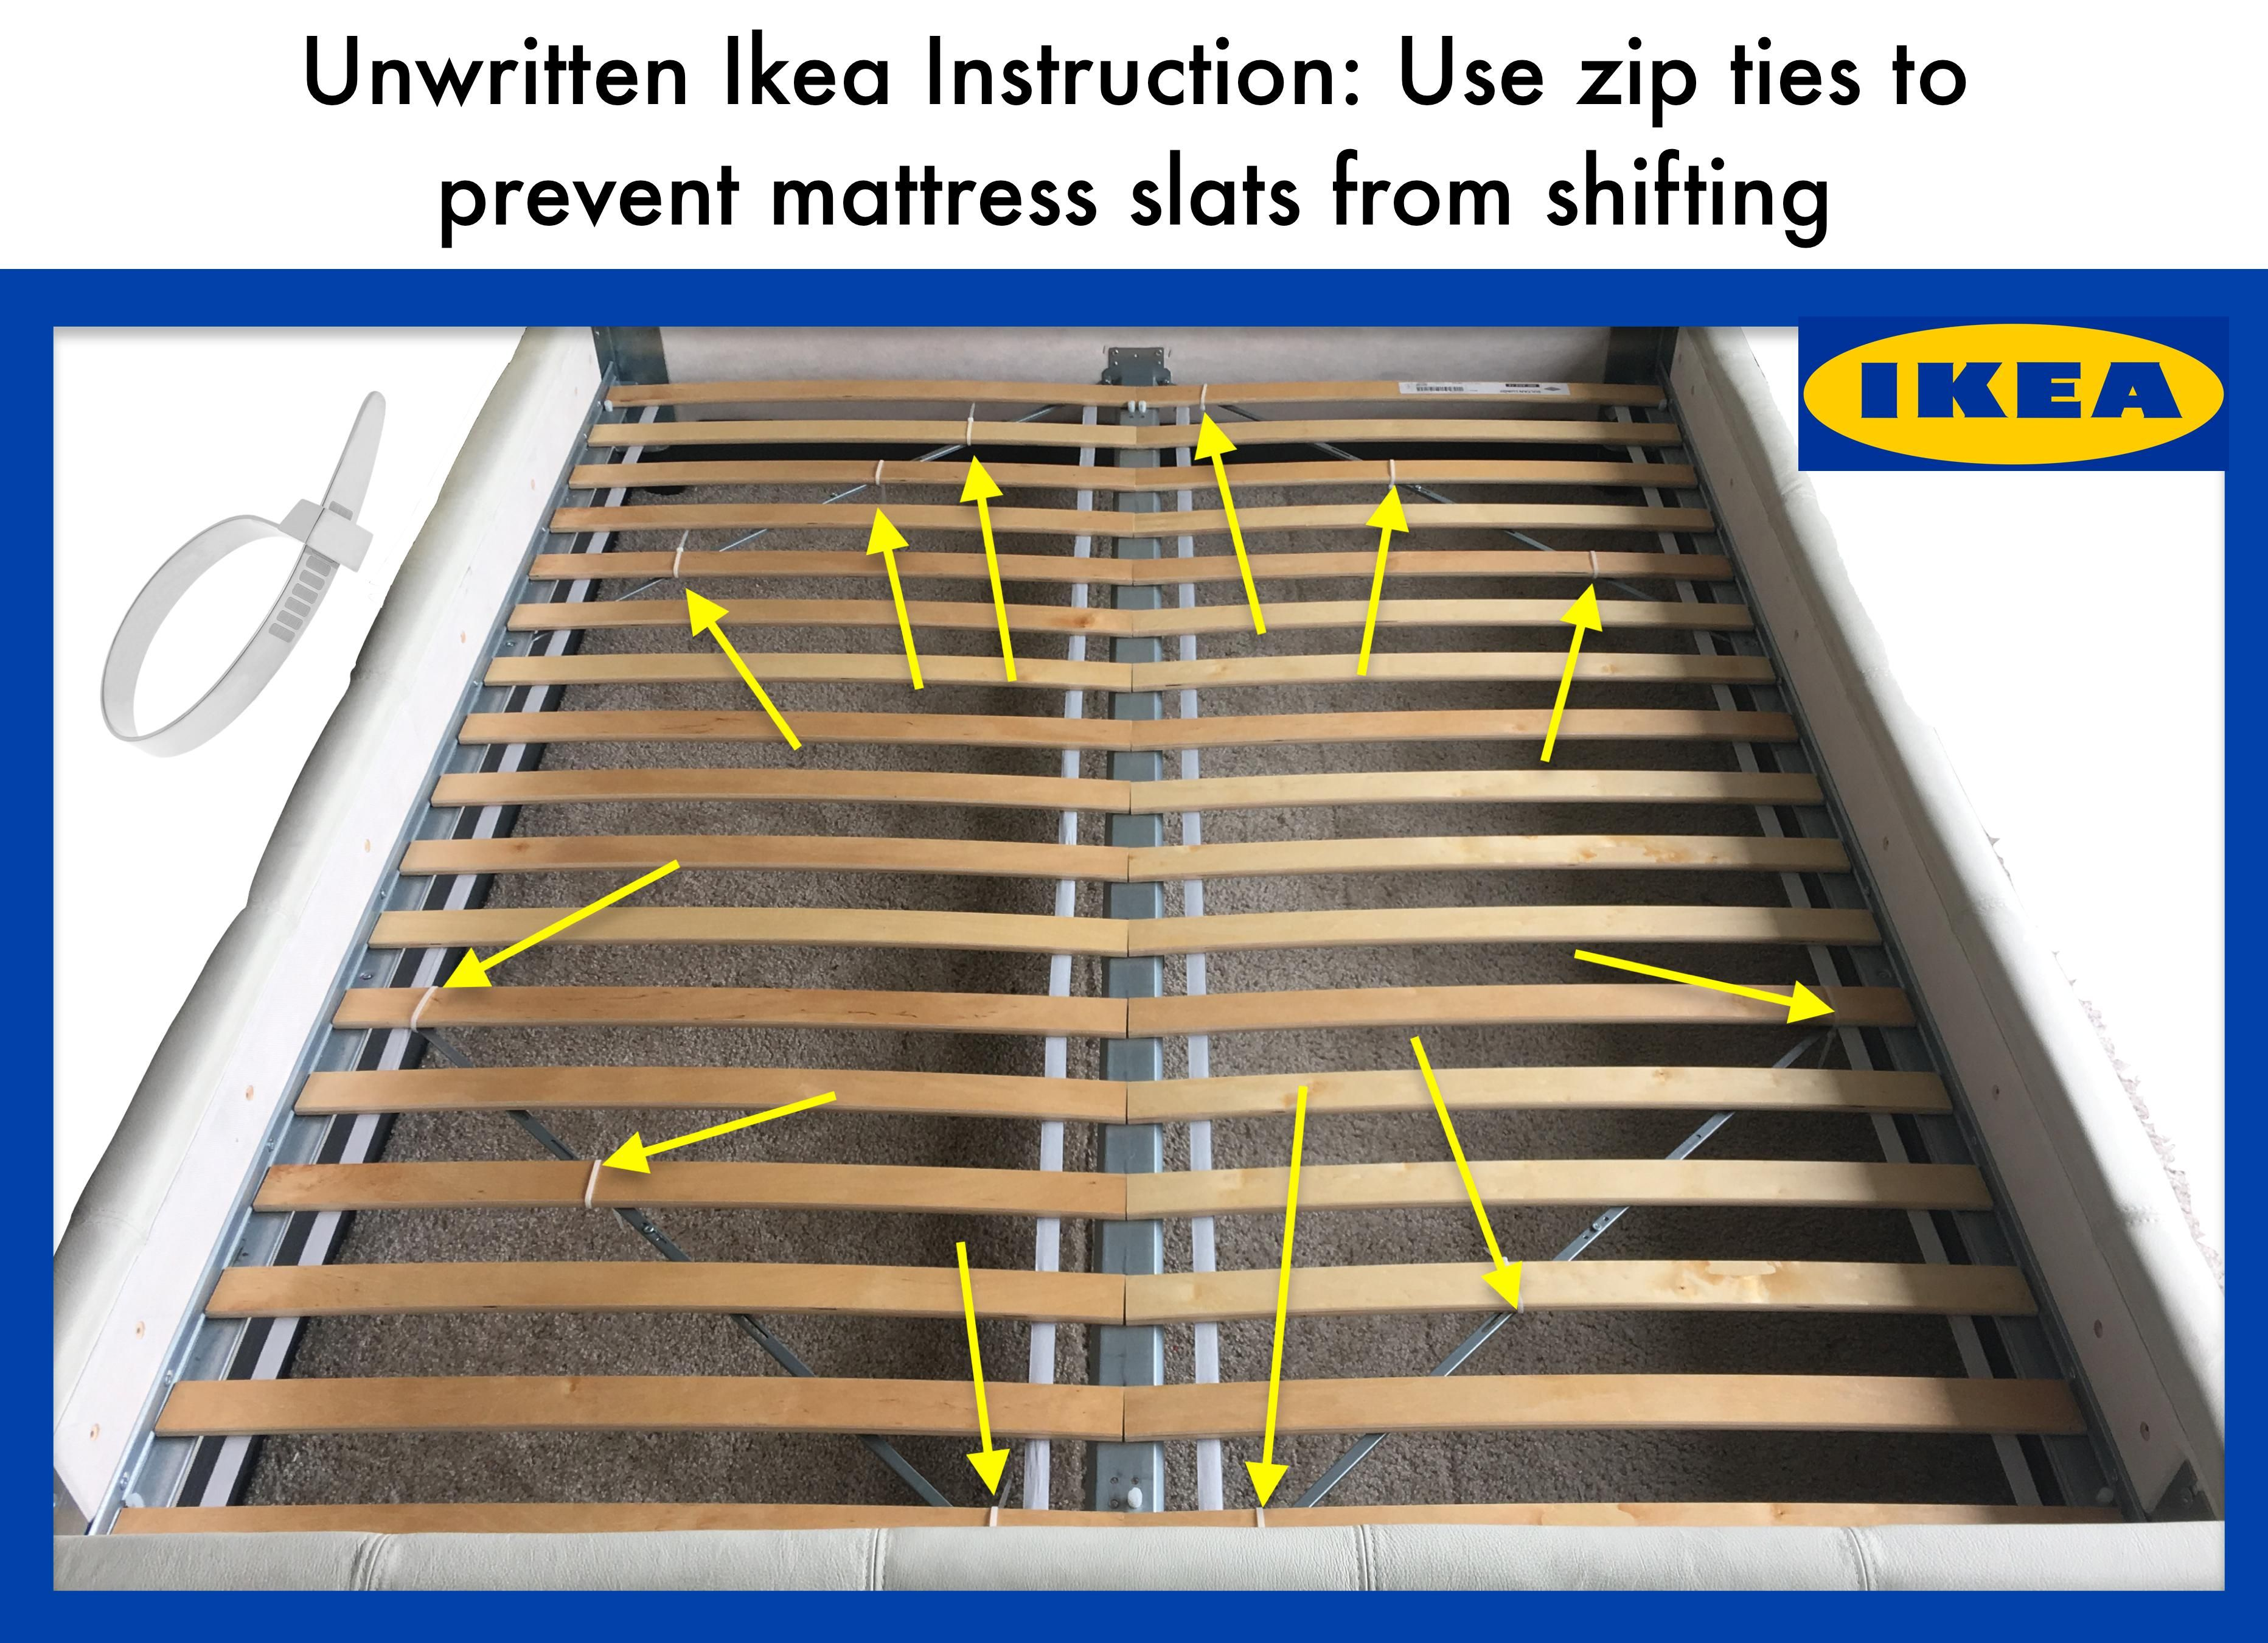 I Wish I Knew About This Years Ago Oc Ikea Bed Slats Ikea Bed